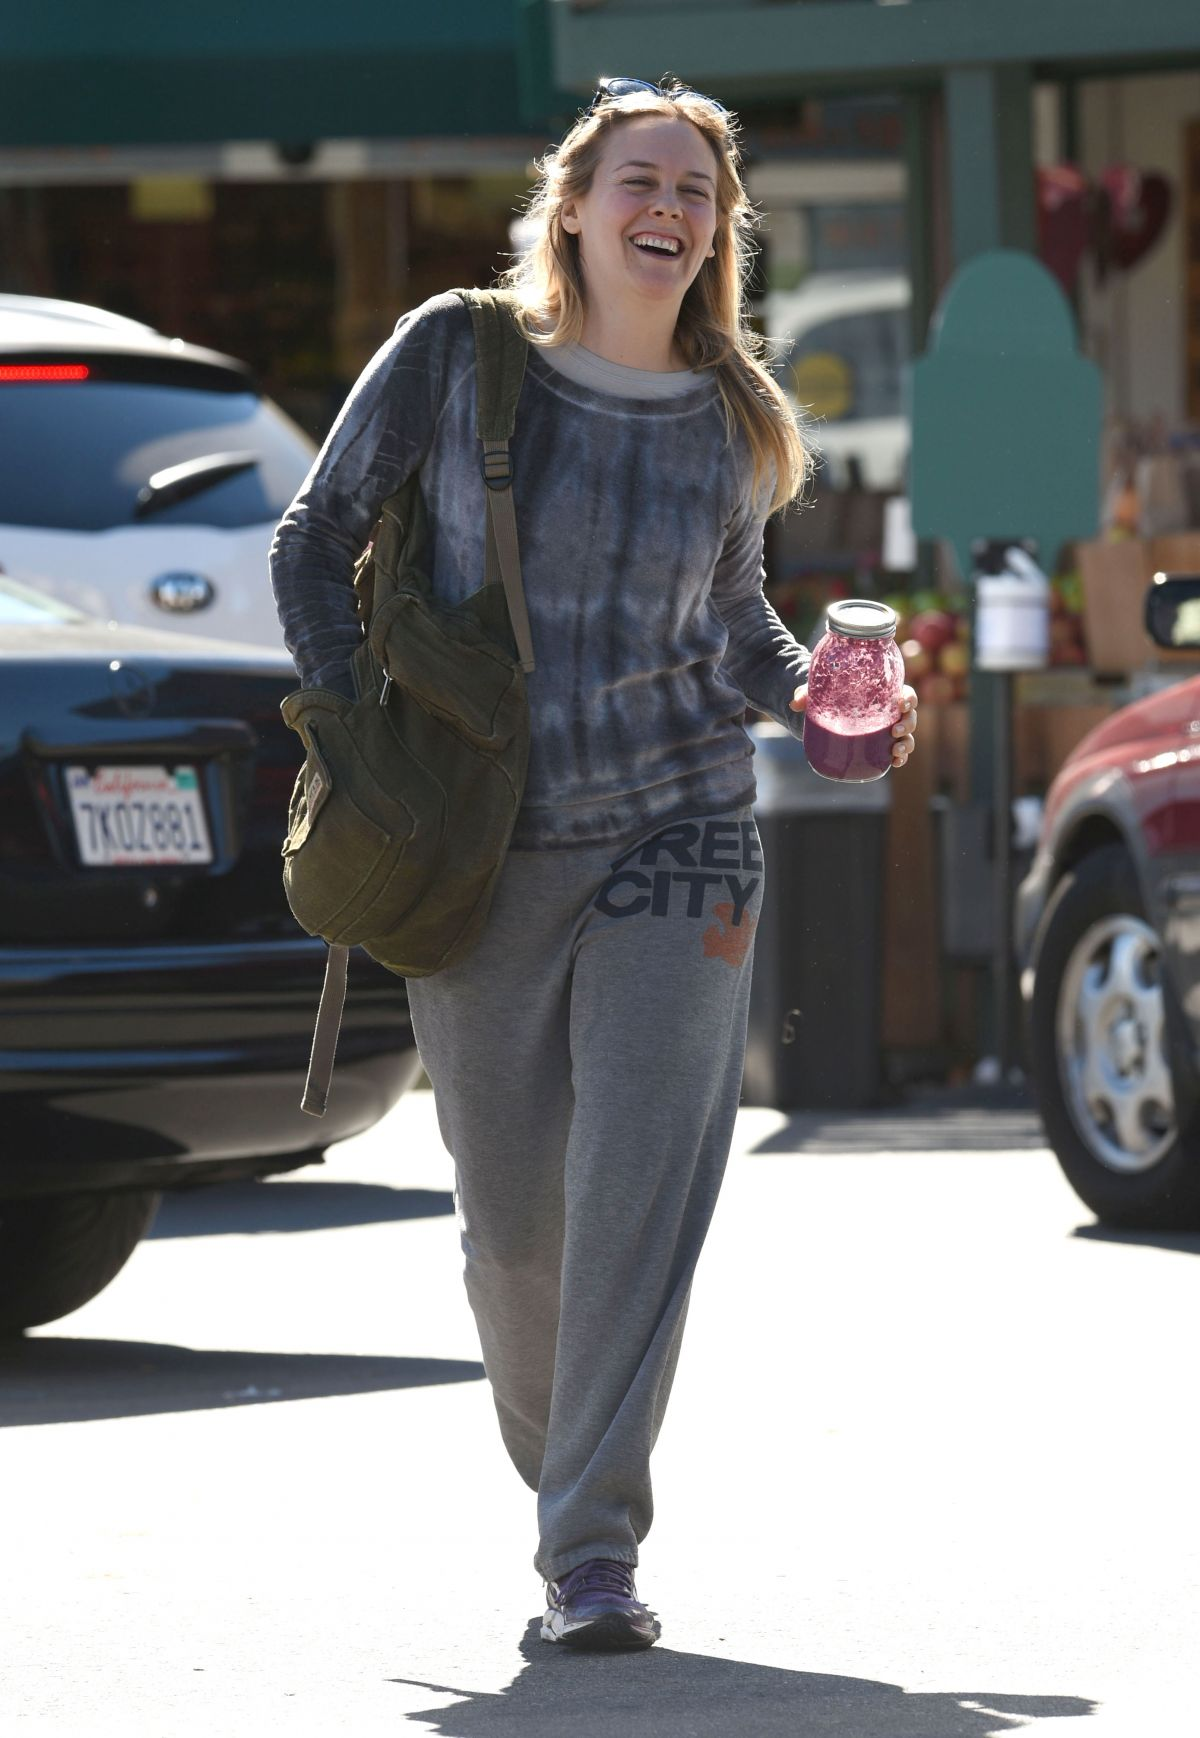 http://www.hawtcelebs.com/wp-content/uploads/2016/02/alicia-silverstone-at-whole-foods-in-los-angeles-02-05-2016_3.jpg